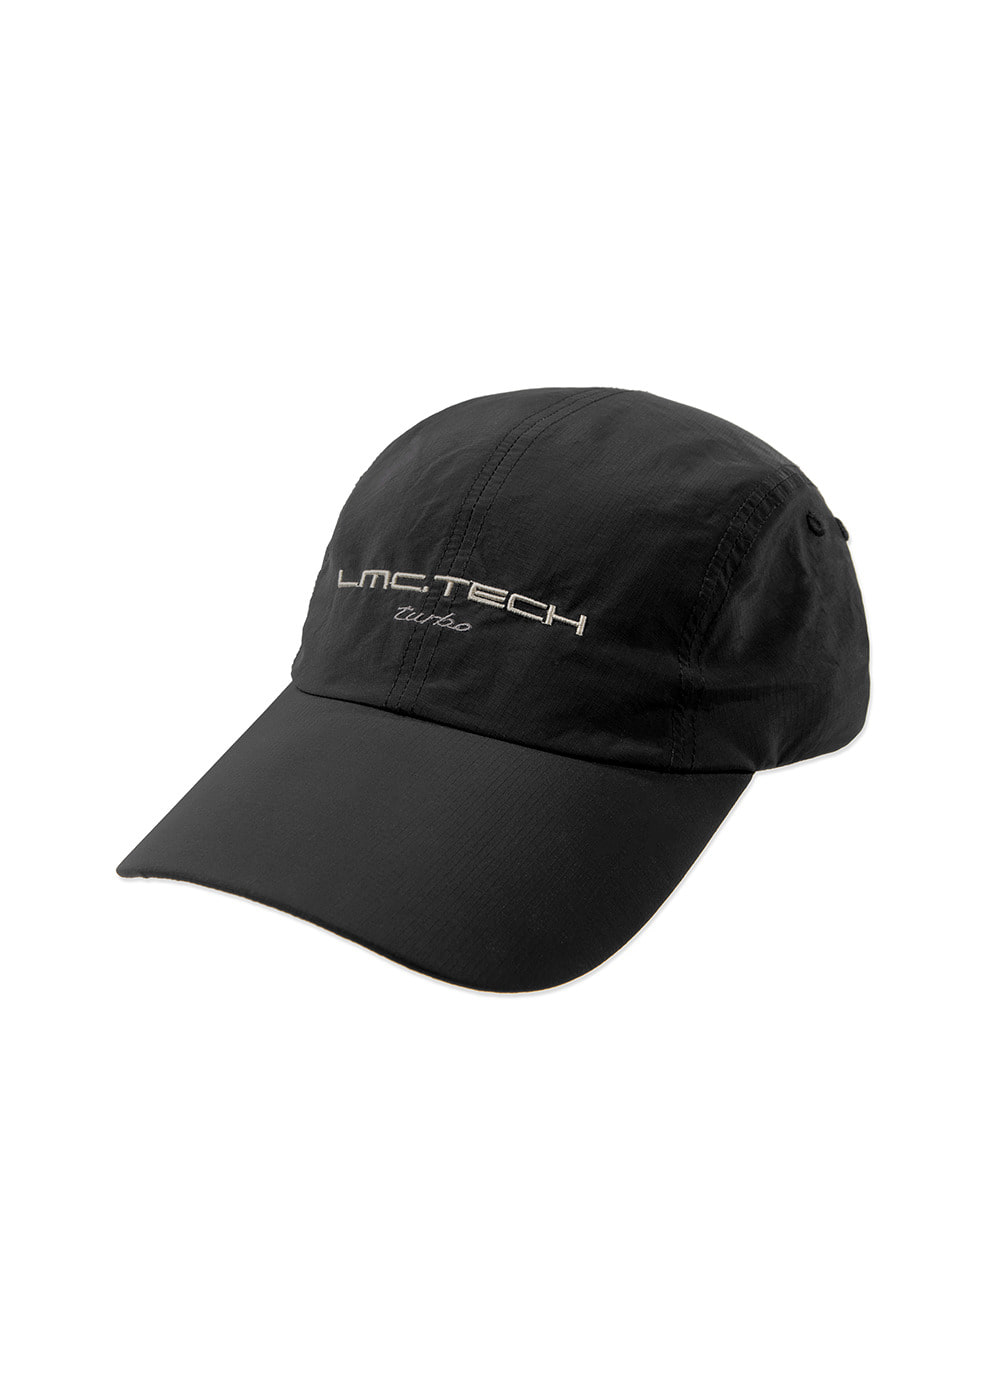 LMC TECH NYLON CAP black